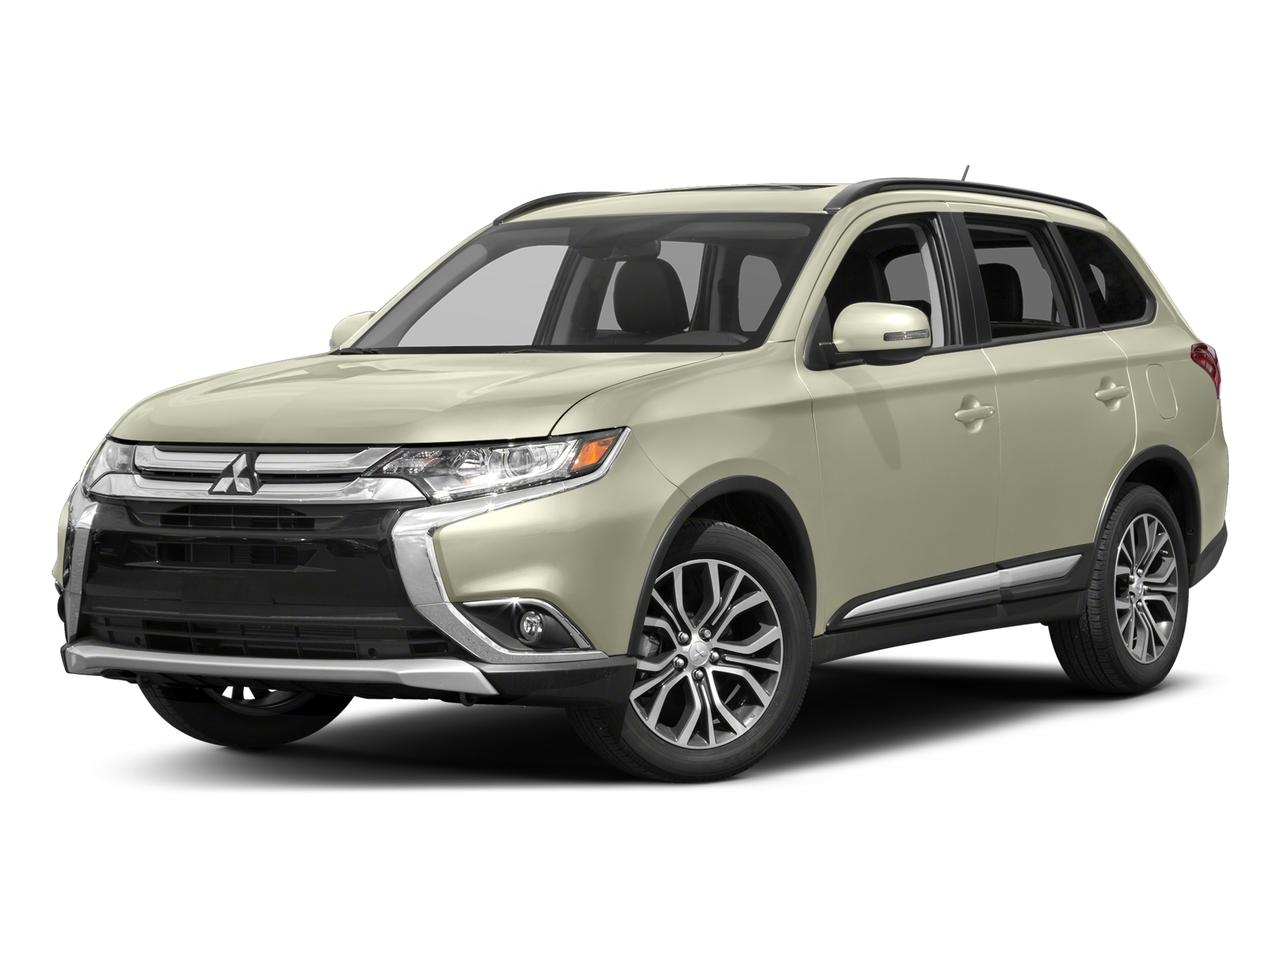 2016 Mitsubishi Outlander Vehicle Photo in Peoria, IL 61615